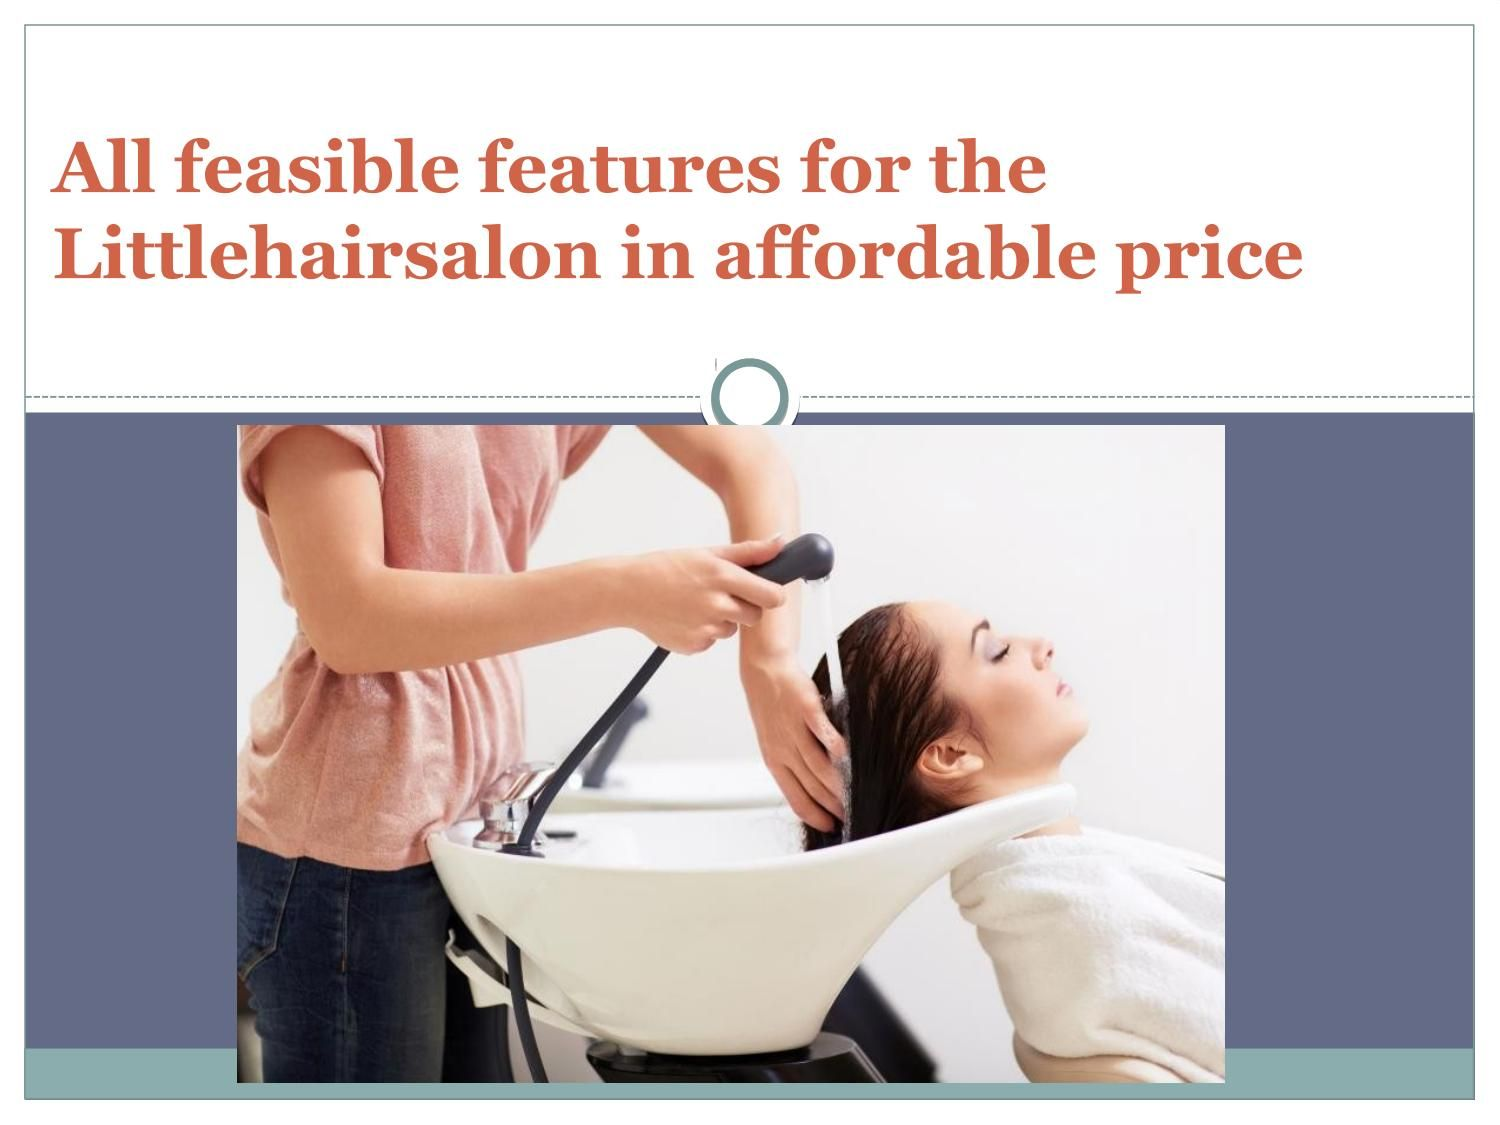 All feasible features for the littlehairsalon in